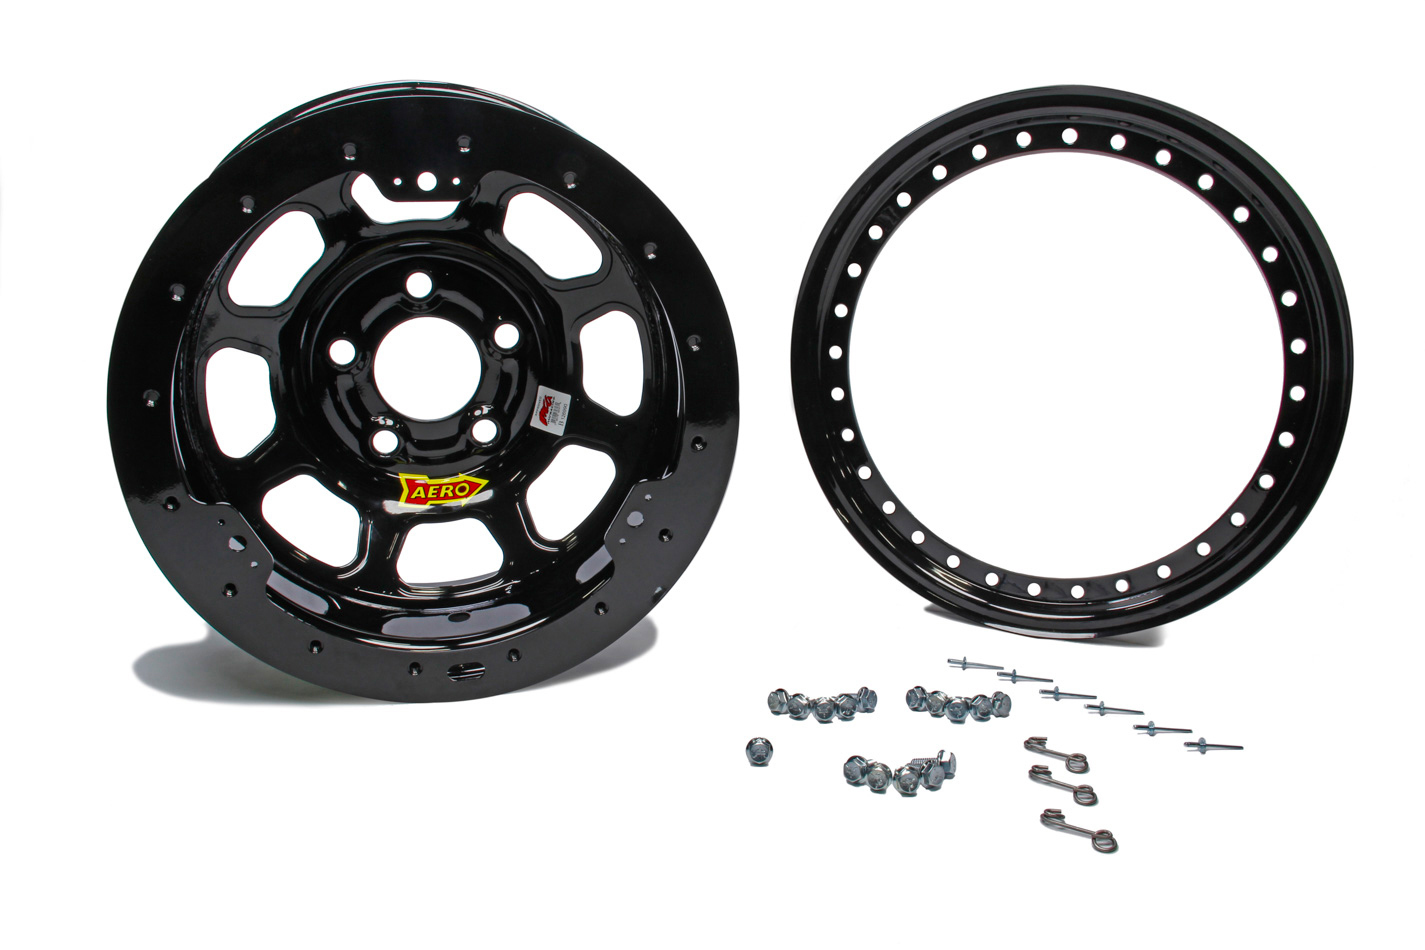 Aero Race 13x7 3in. 4.25 Black Beadlock Wheel